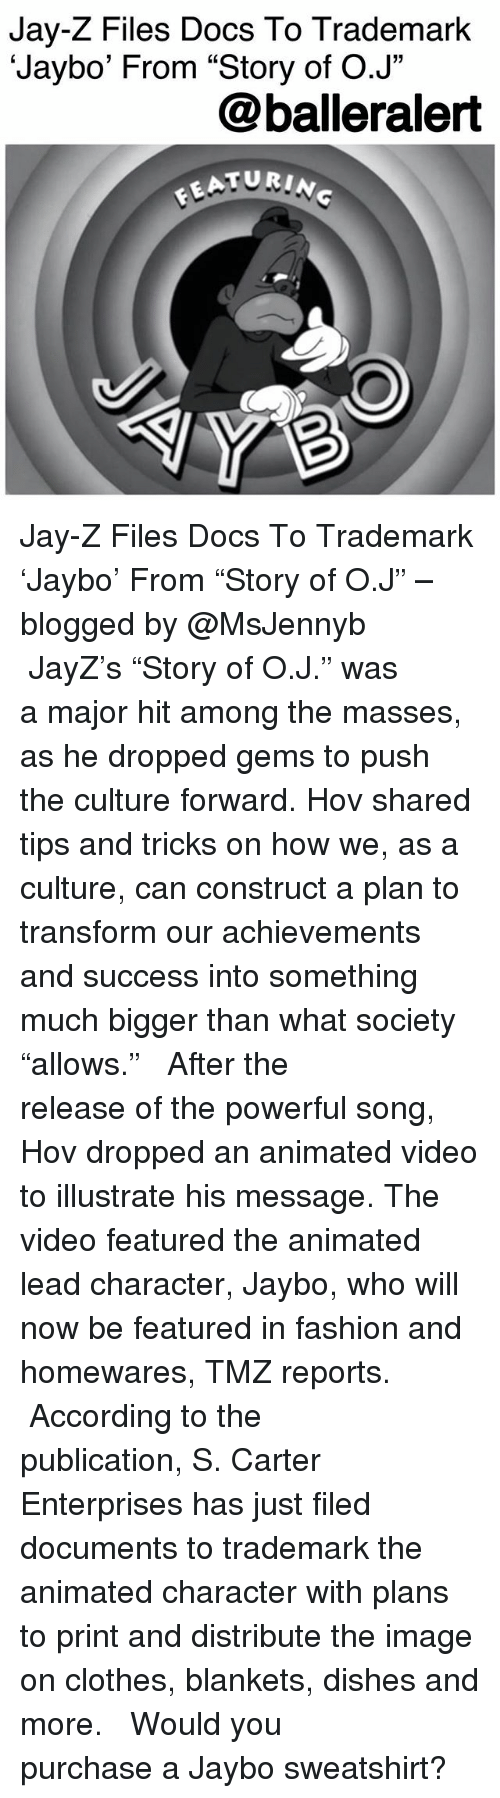 """Clothes, Fashion, and Jay: Jay-Z Files Docs To Trademark  'Jaybo' From """"Story of O.J""""  @balleralert  ATURIN Jay-Z Files Docs To Trademark 'Jaybo' From """"Story of O.J"""" – blogged by @MsJennyb ⠀⠀⠀⠀⠀⠀⠀ ⠀⠀⠀⠀⠀⠀⠀ JayZ's """"Story of O.J."""" was a major hit among the masses, as he dropped gems to push the culture forward. Hov shared tips and tricks on how we, as a culture, can construct a plan to transform our achievements and success into something much bigger than what society """"allows."""" ⠀⠀⠀⠀⠀⠀⠀ ⠀⠀⠀⠀⠀⠀⠀ After the release of the powerful song, Hov dropped an animated video to illustrate his message. The video featured the animated lead character, Jaybo, who will now be featured in fashion and homewares, TMZ reports. ⠀⠀⠀⠀⠀⠀⠀ ⠀⠀⠀⠀⠀⠀⠀ According to the publication, S. Carter Enterprises has just filed documents to trademark the animated character with plans to print and distribute the image on clothes, blankets, dishes and more. ⠀⠀⠀⠀⠀⠀⠀ ⠀⠀⠀⠀⠀⠀⠀ Would you purchase a Jaybo sweatshirt?"""